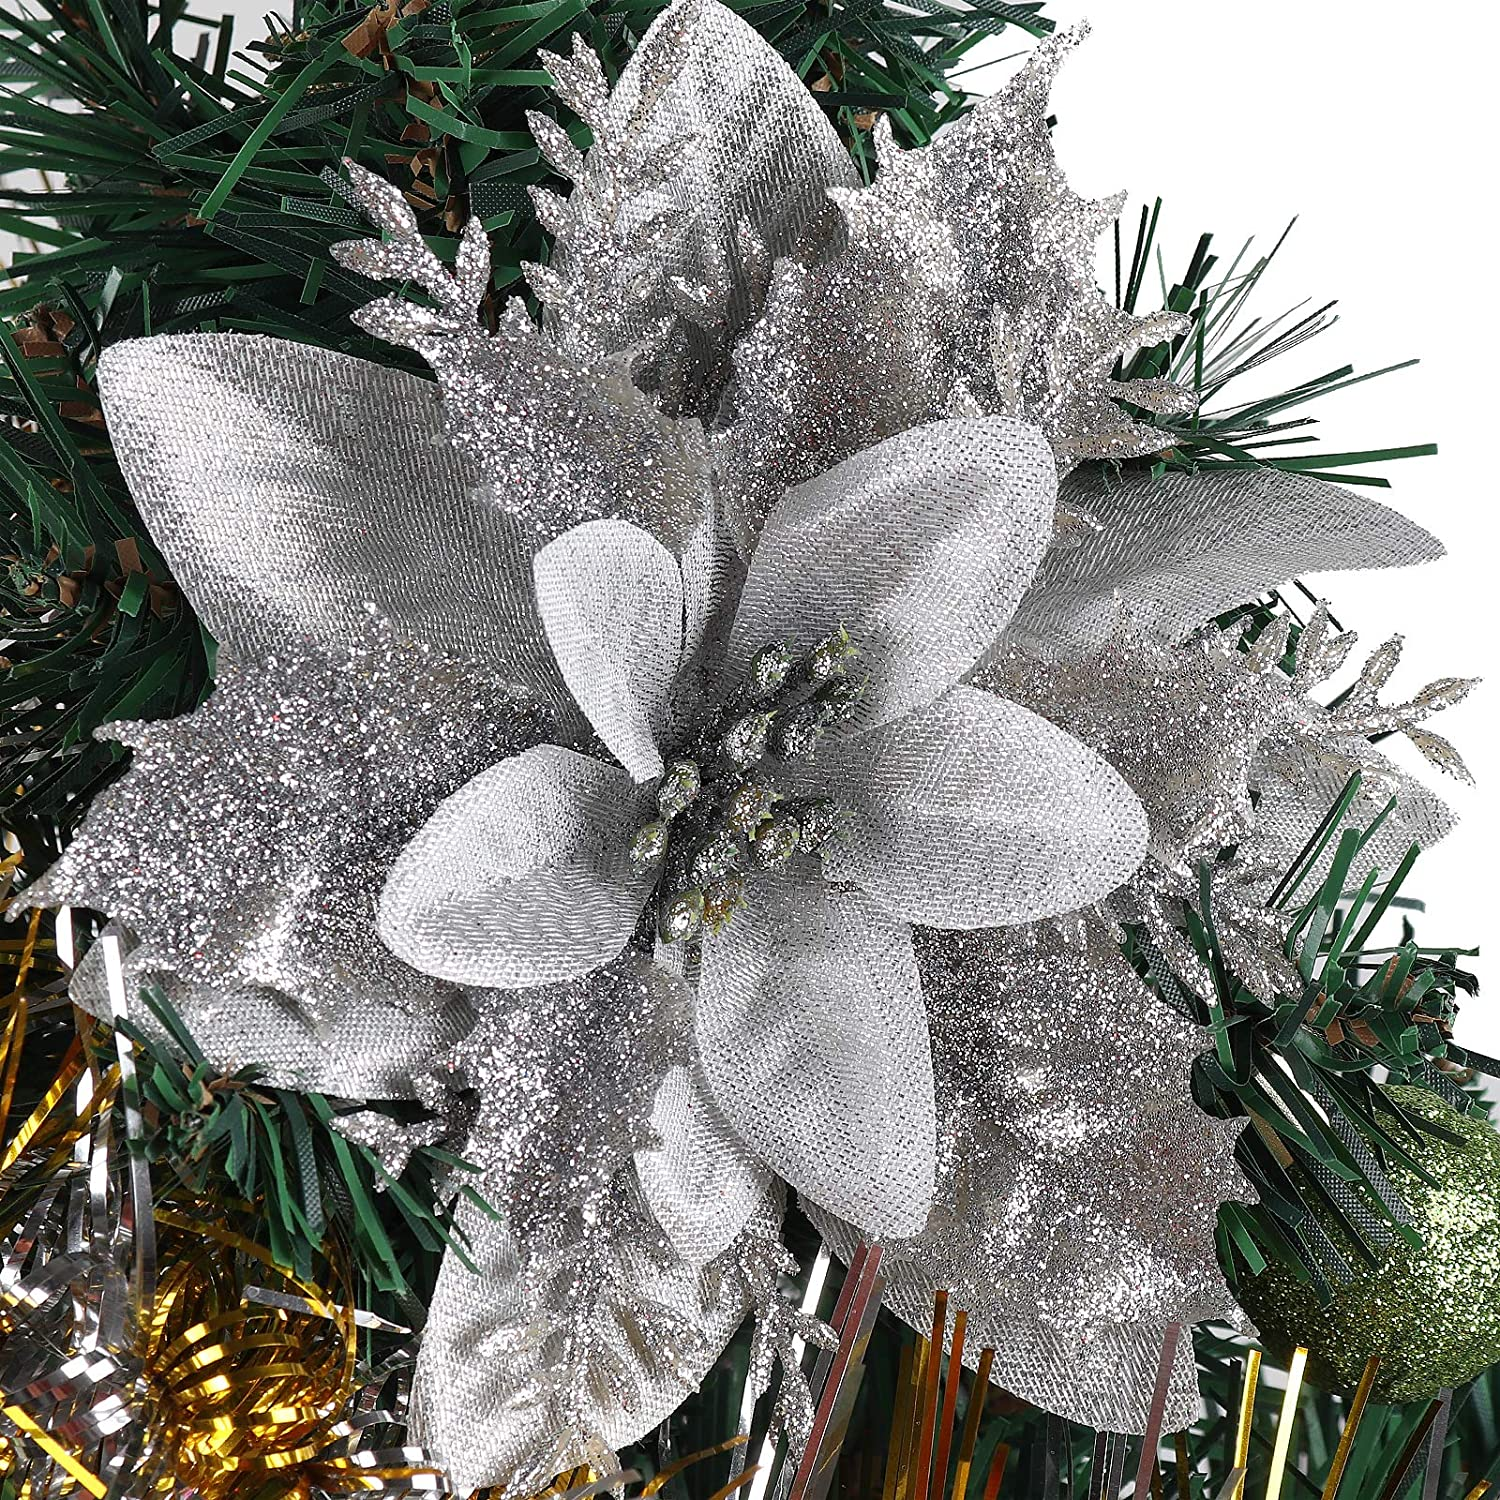 RECUTMS 10 Pieces Christmas Glitter Artificial Poinsettia Flowers Artificial Wedding Flowers Decorations Xmas Tree Ornaments 6-inch Decor Wreath Garland Holiday(Silver)